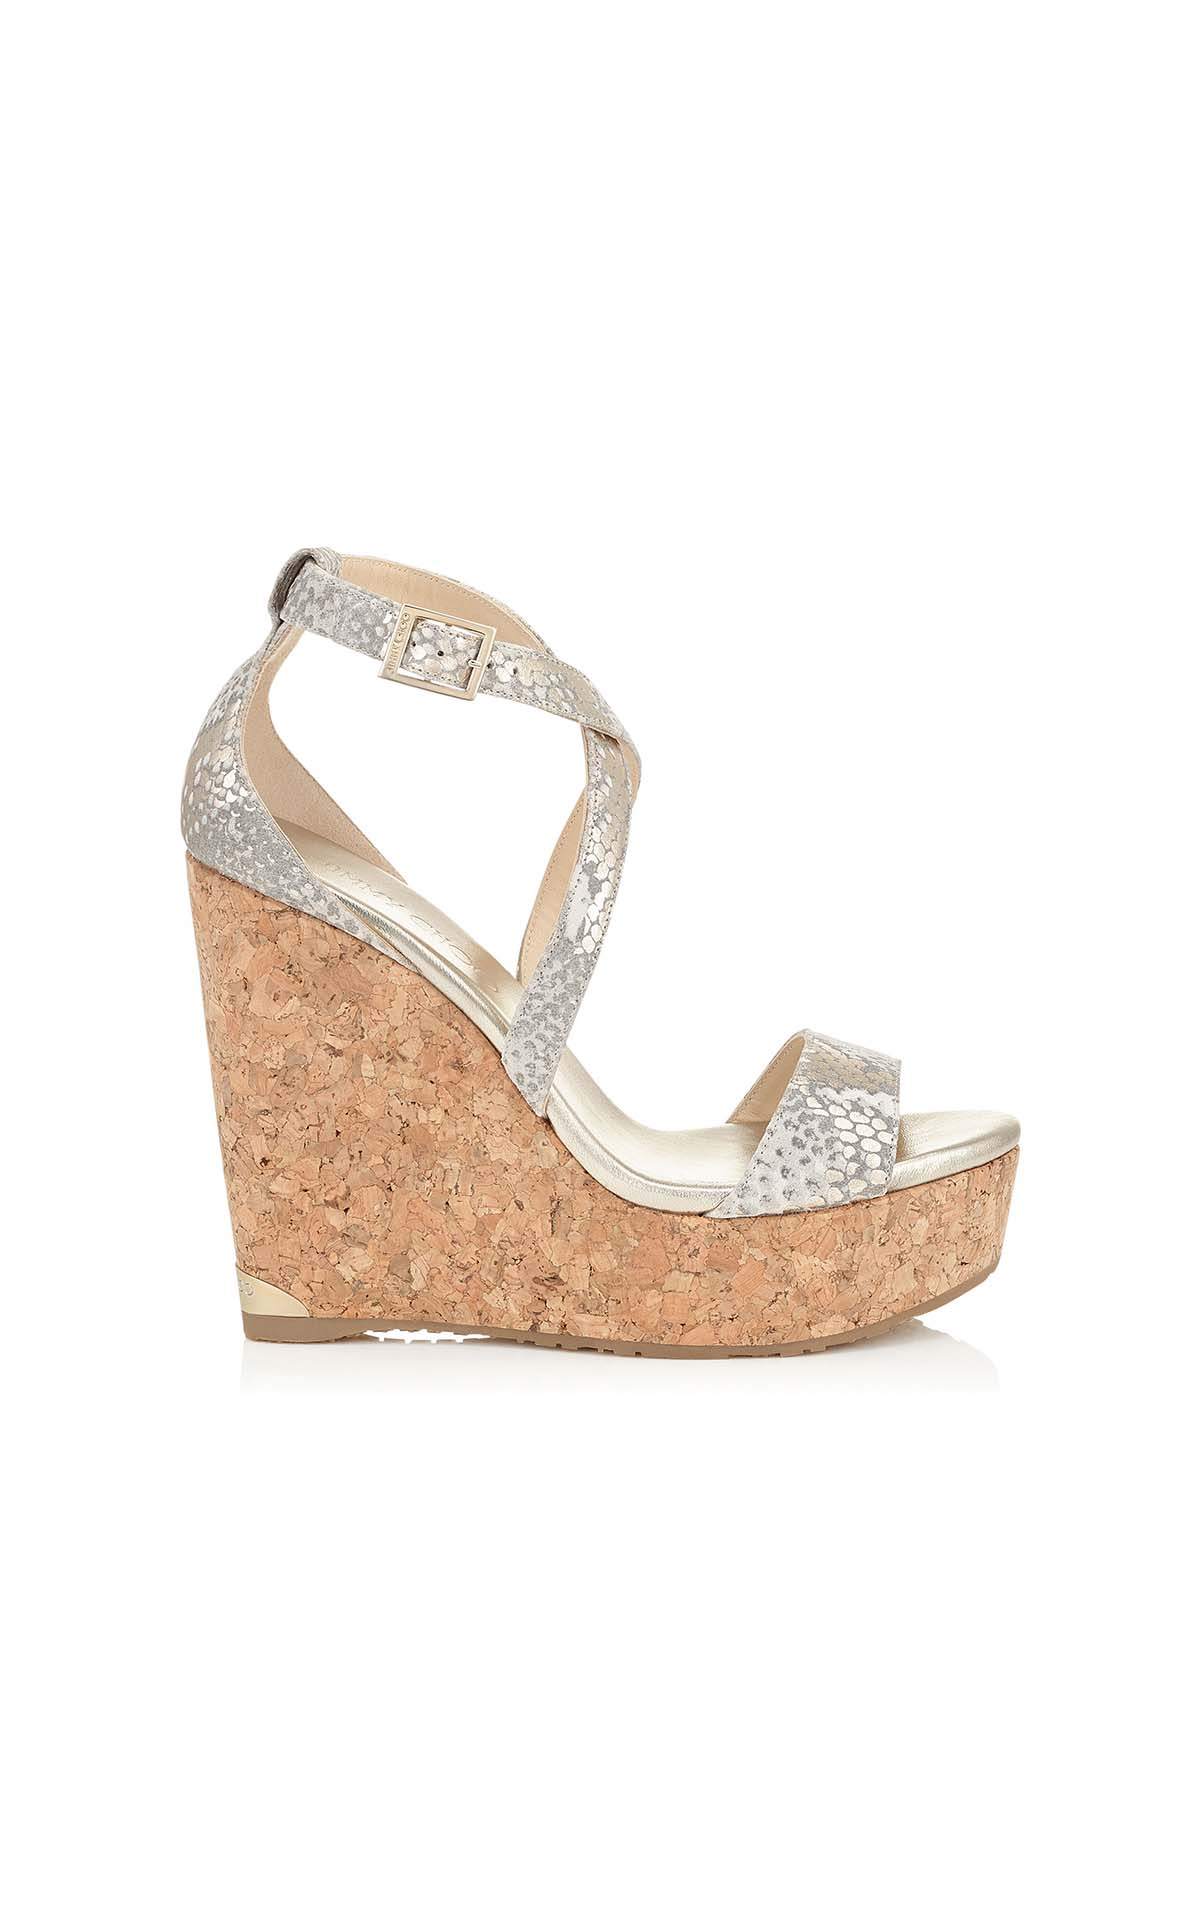 Jimmy Choo Portia at The Bicester Village Shopping Collection